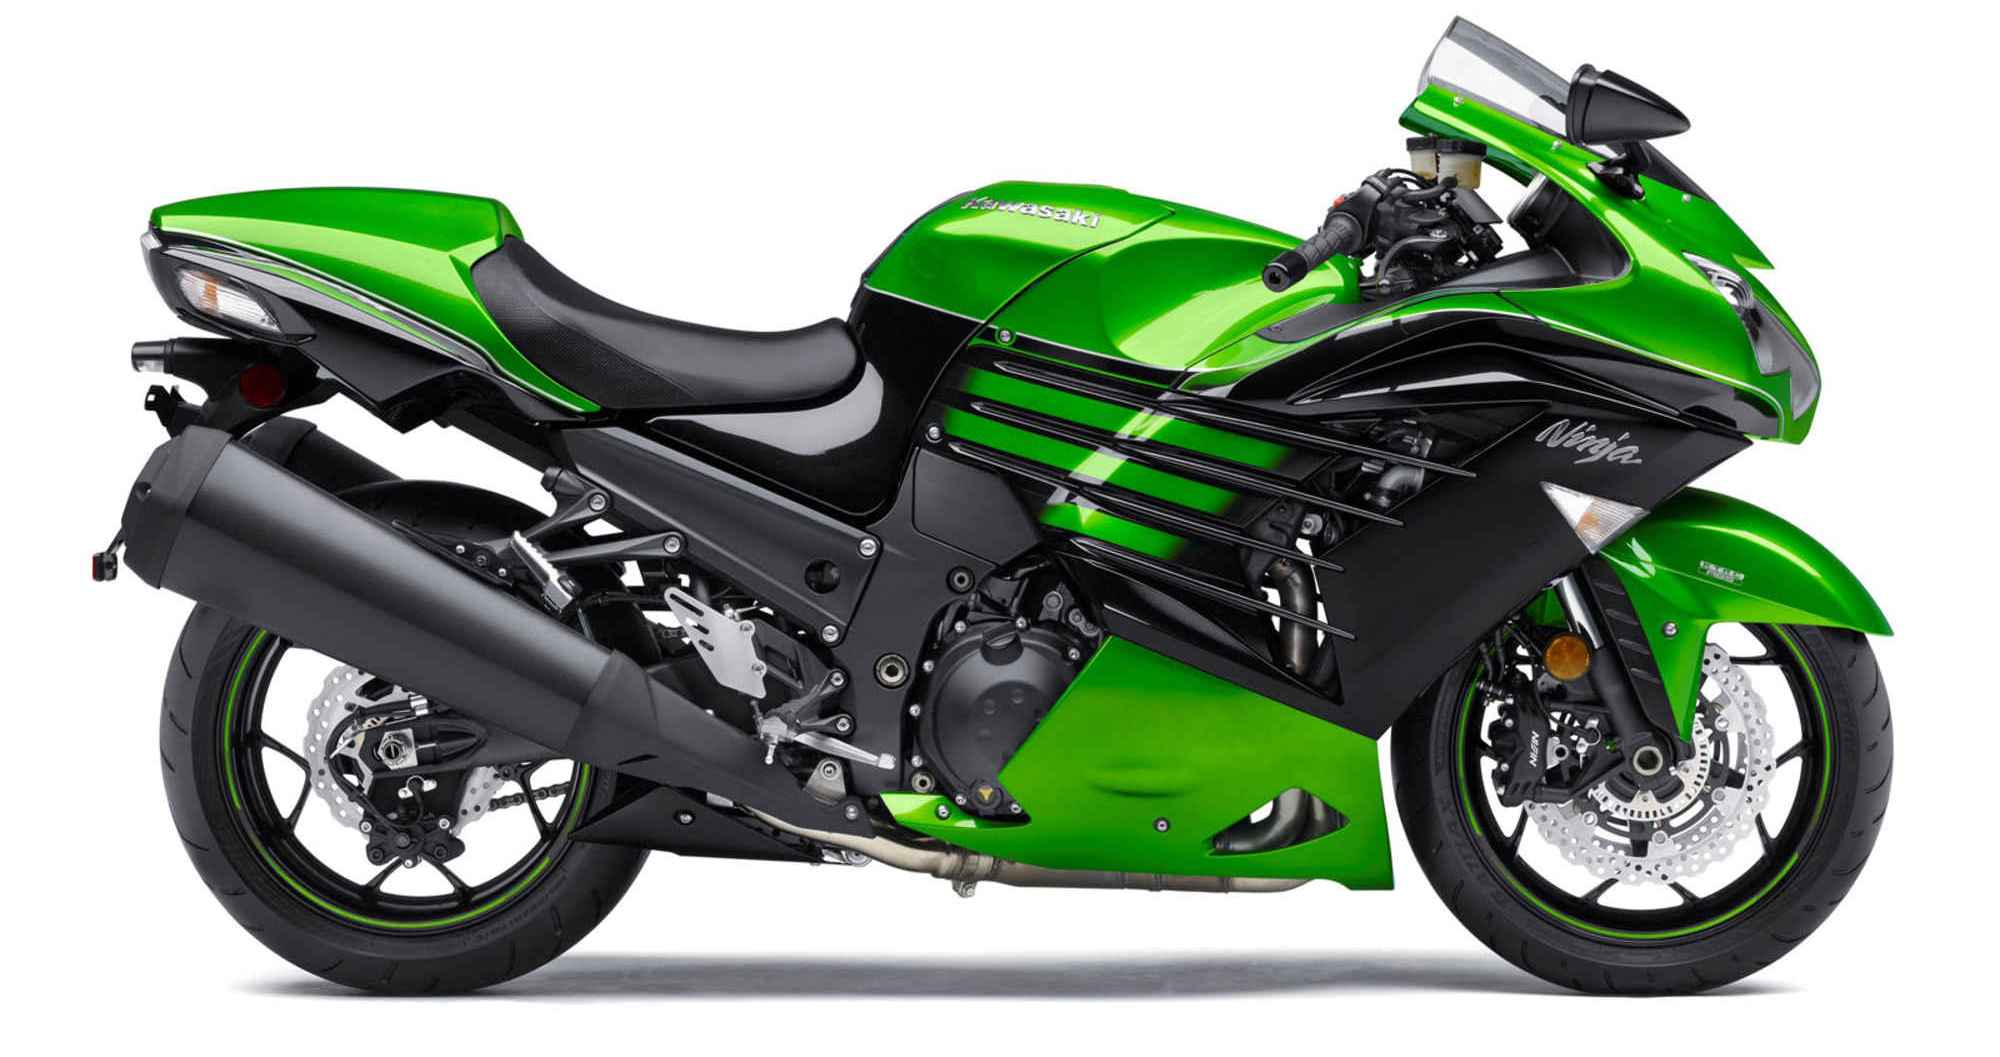 2016 Kawasaki ZX-14R ABS Green Color